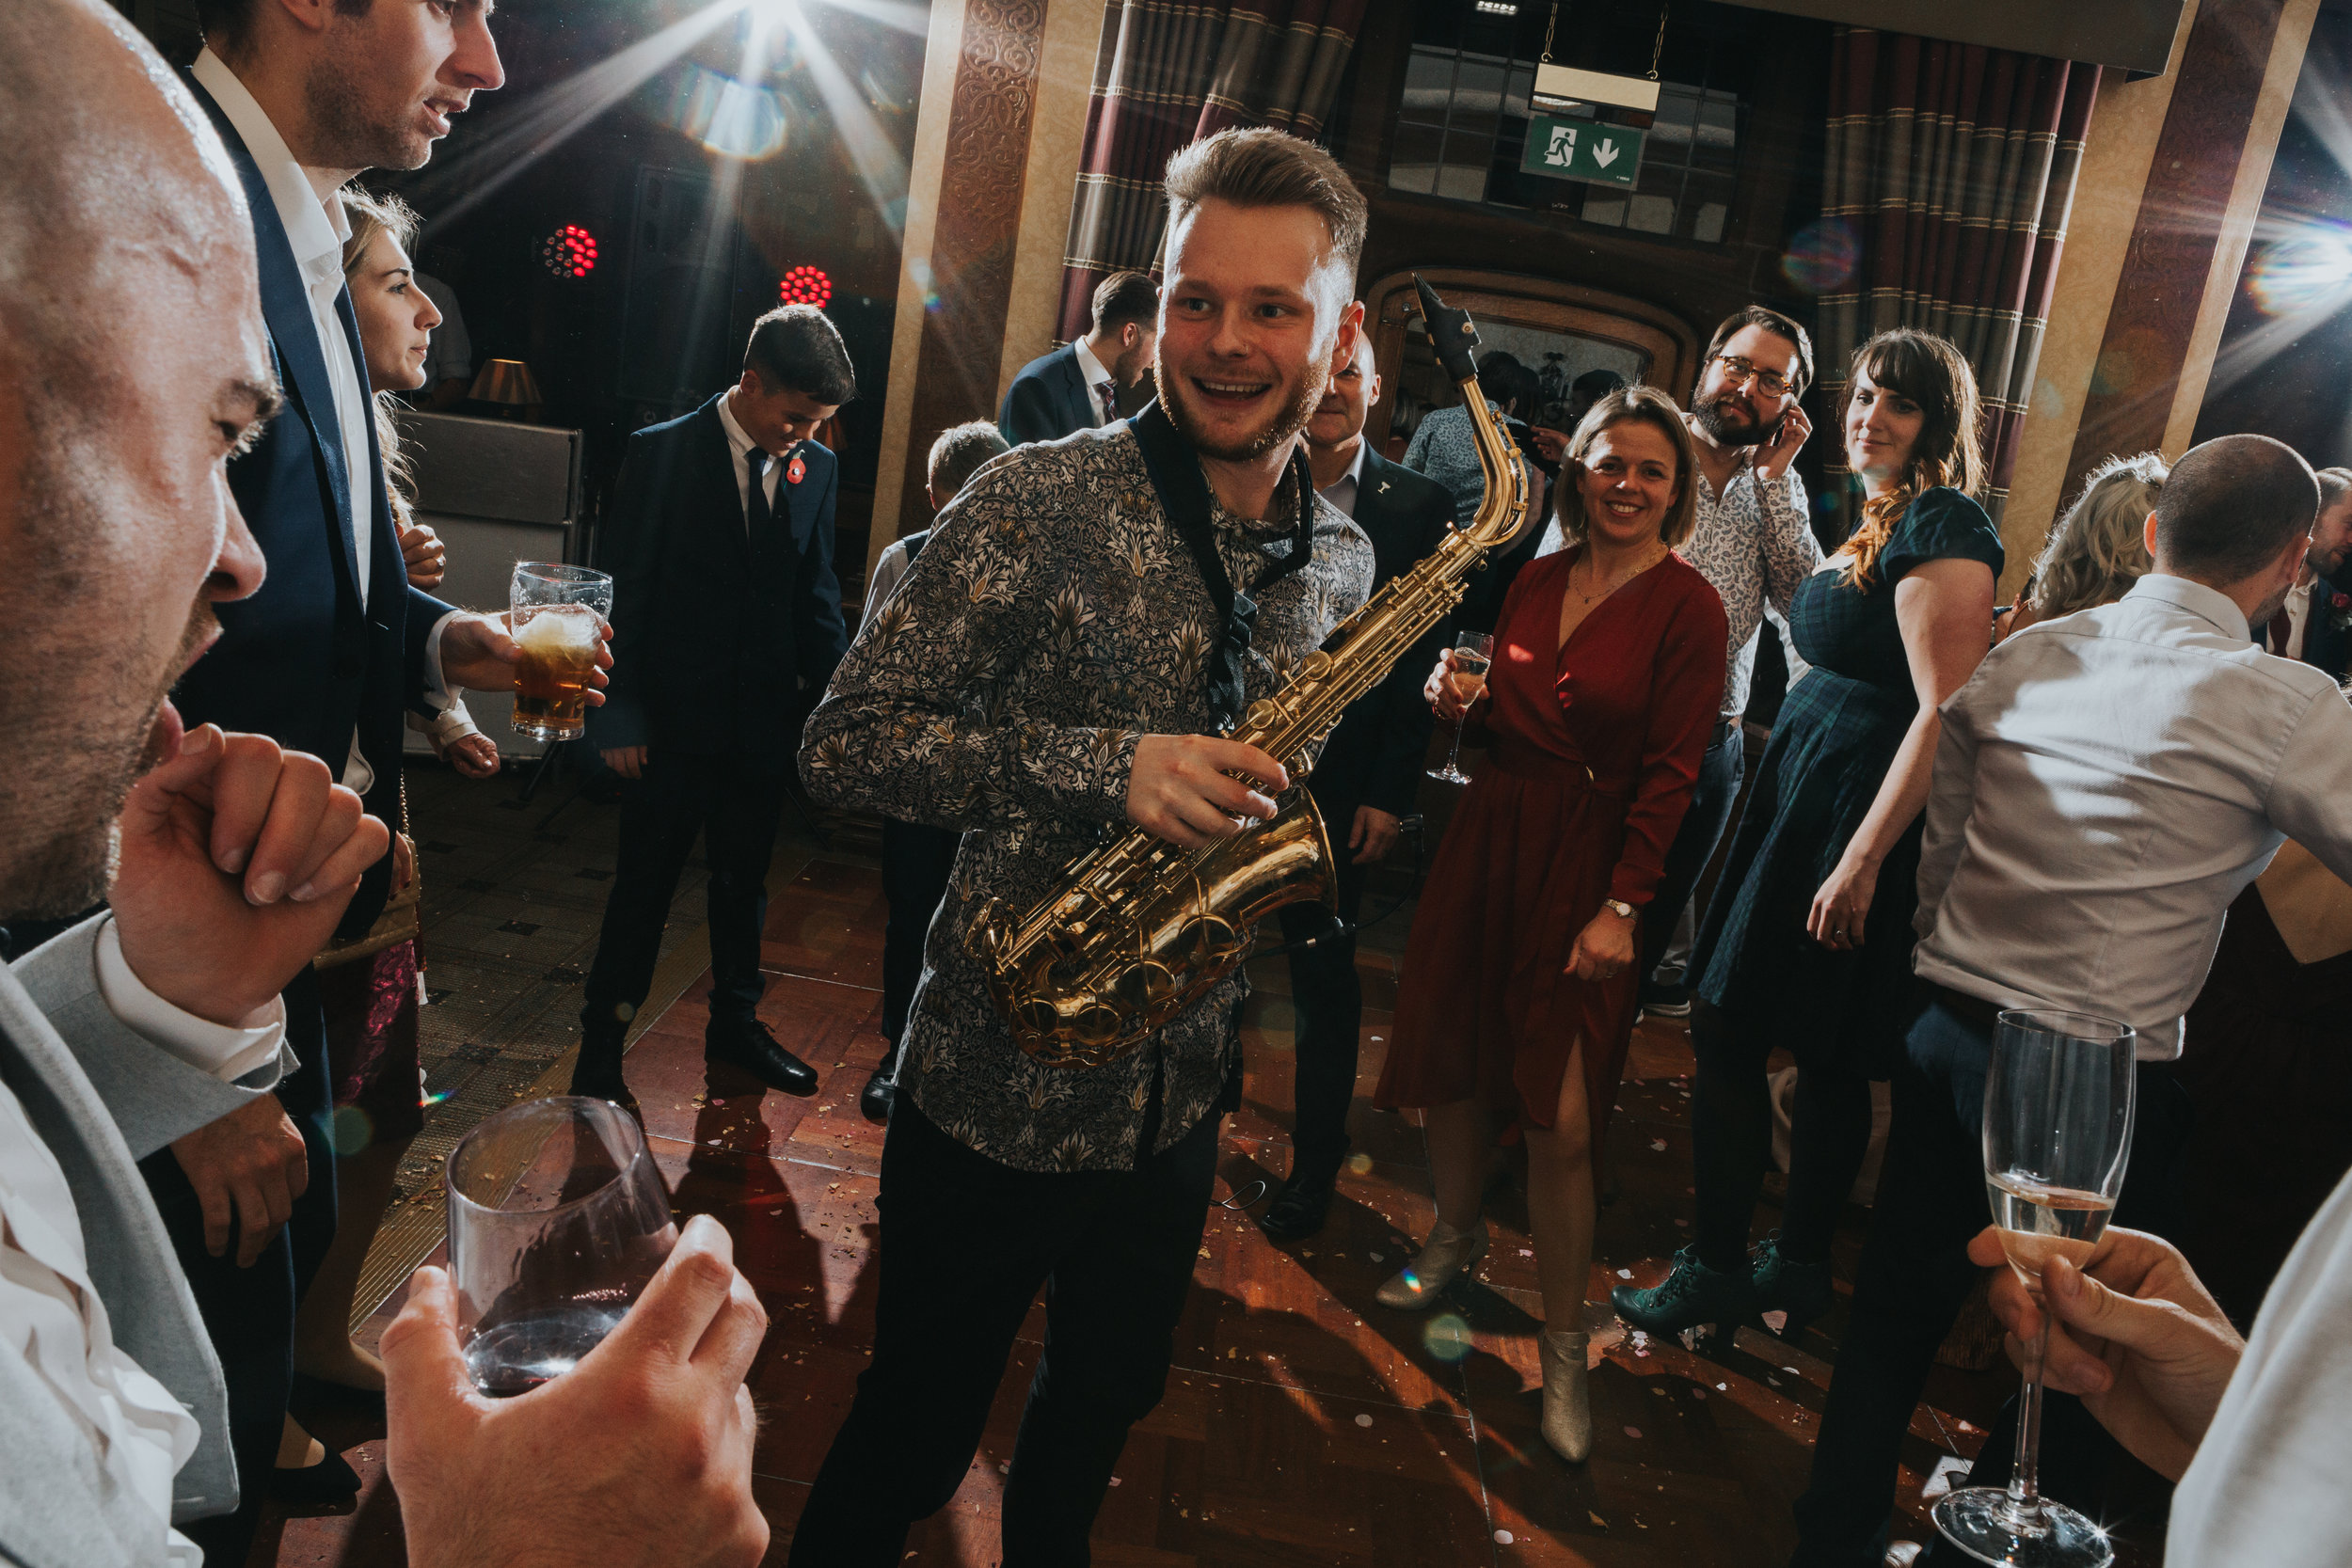 Saxophone player smiles at guests giving it their all on the dance floor.